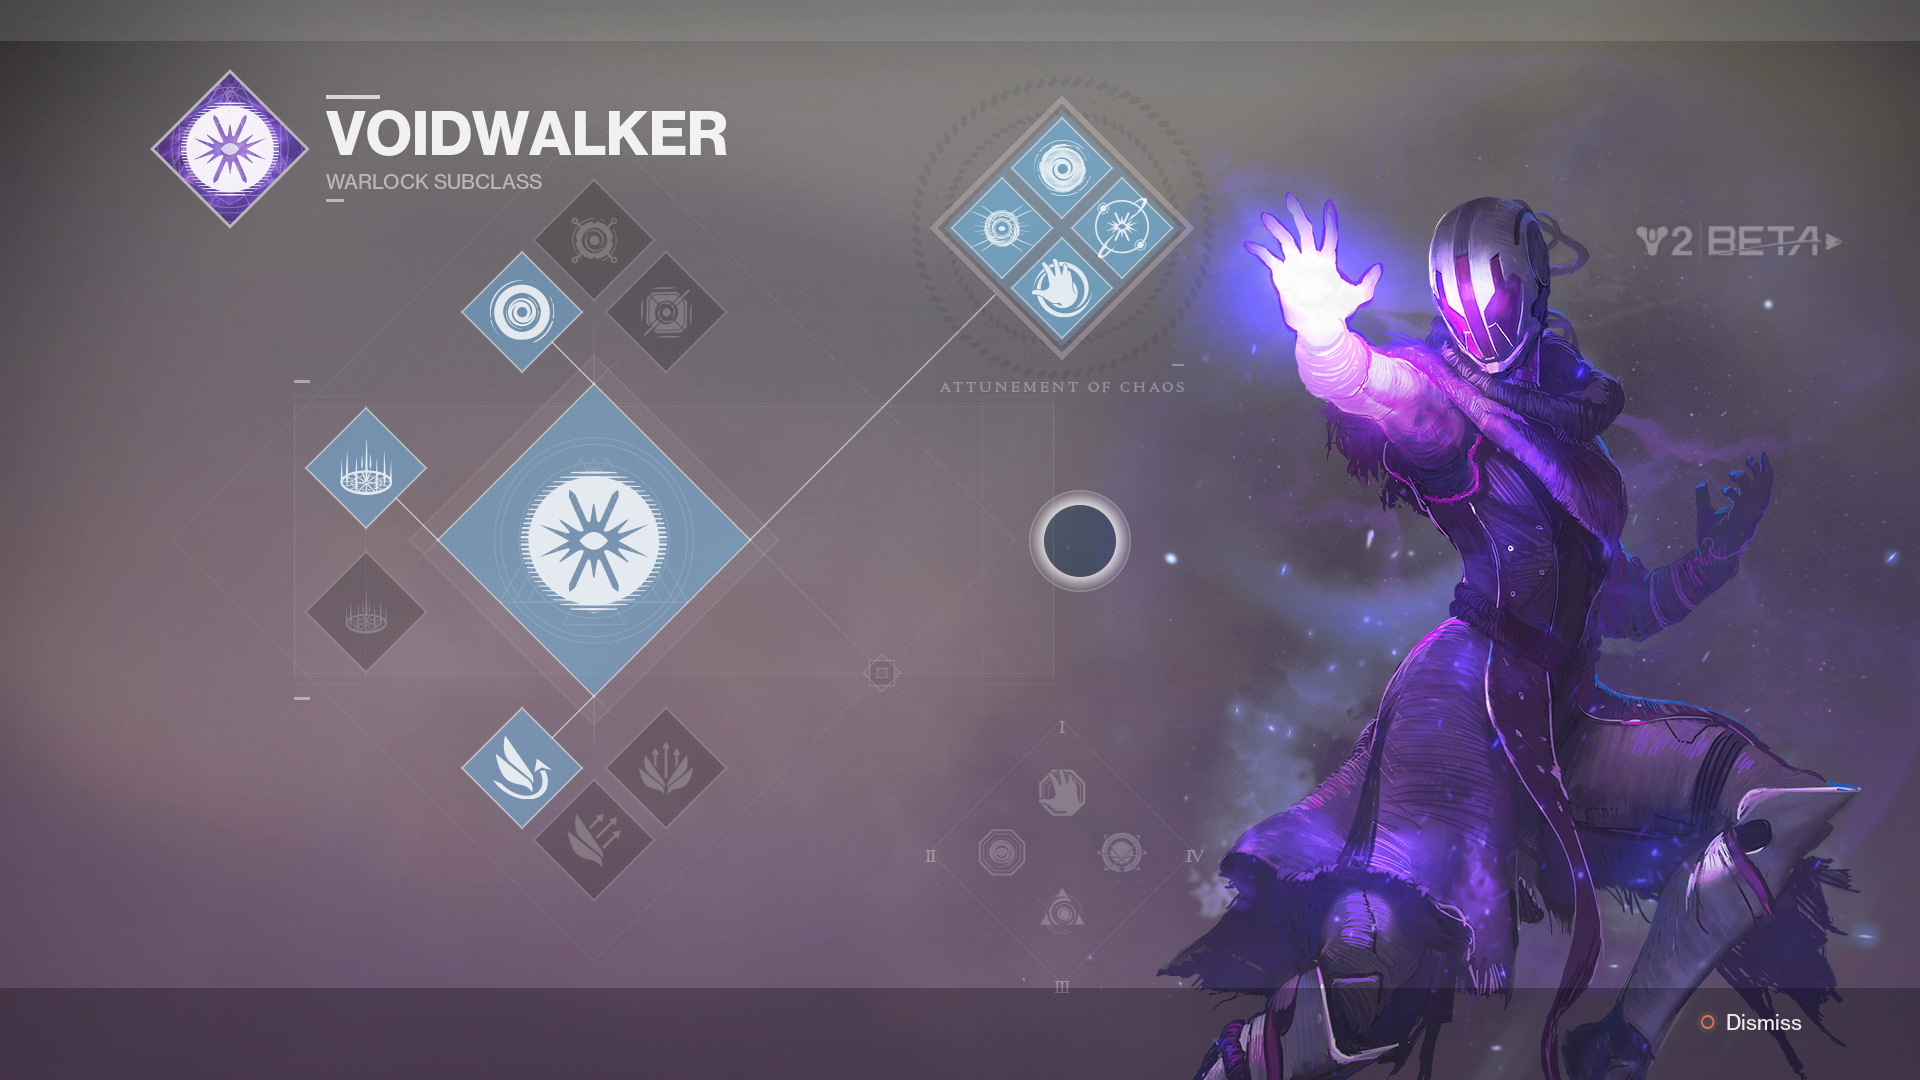 Destiny 2 Warlock Voidwalker Super Abilities And Grenades